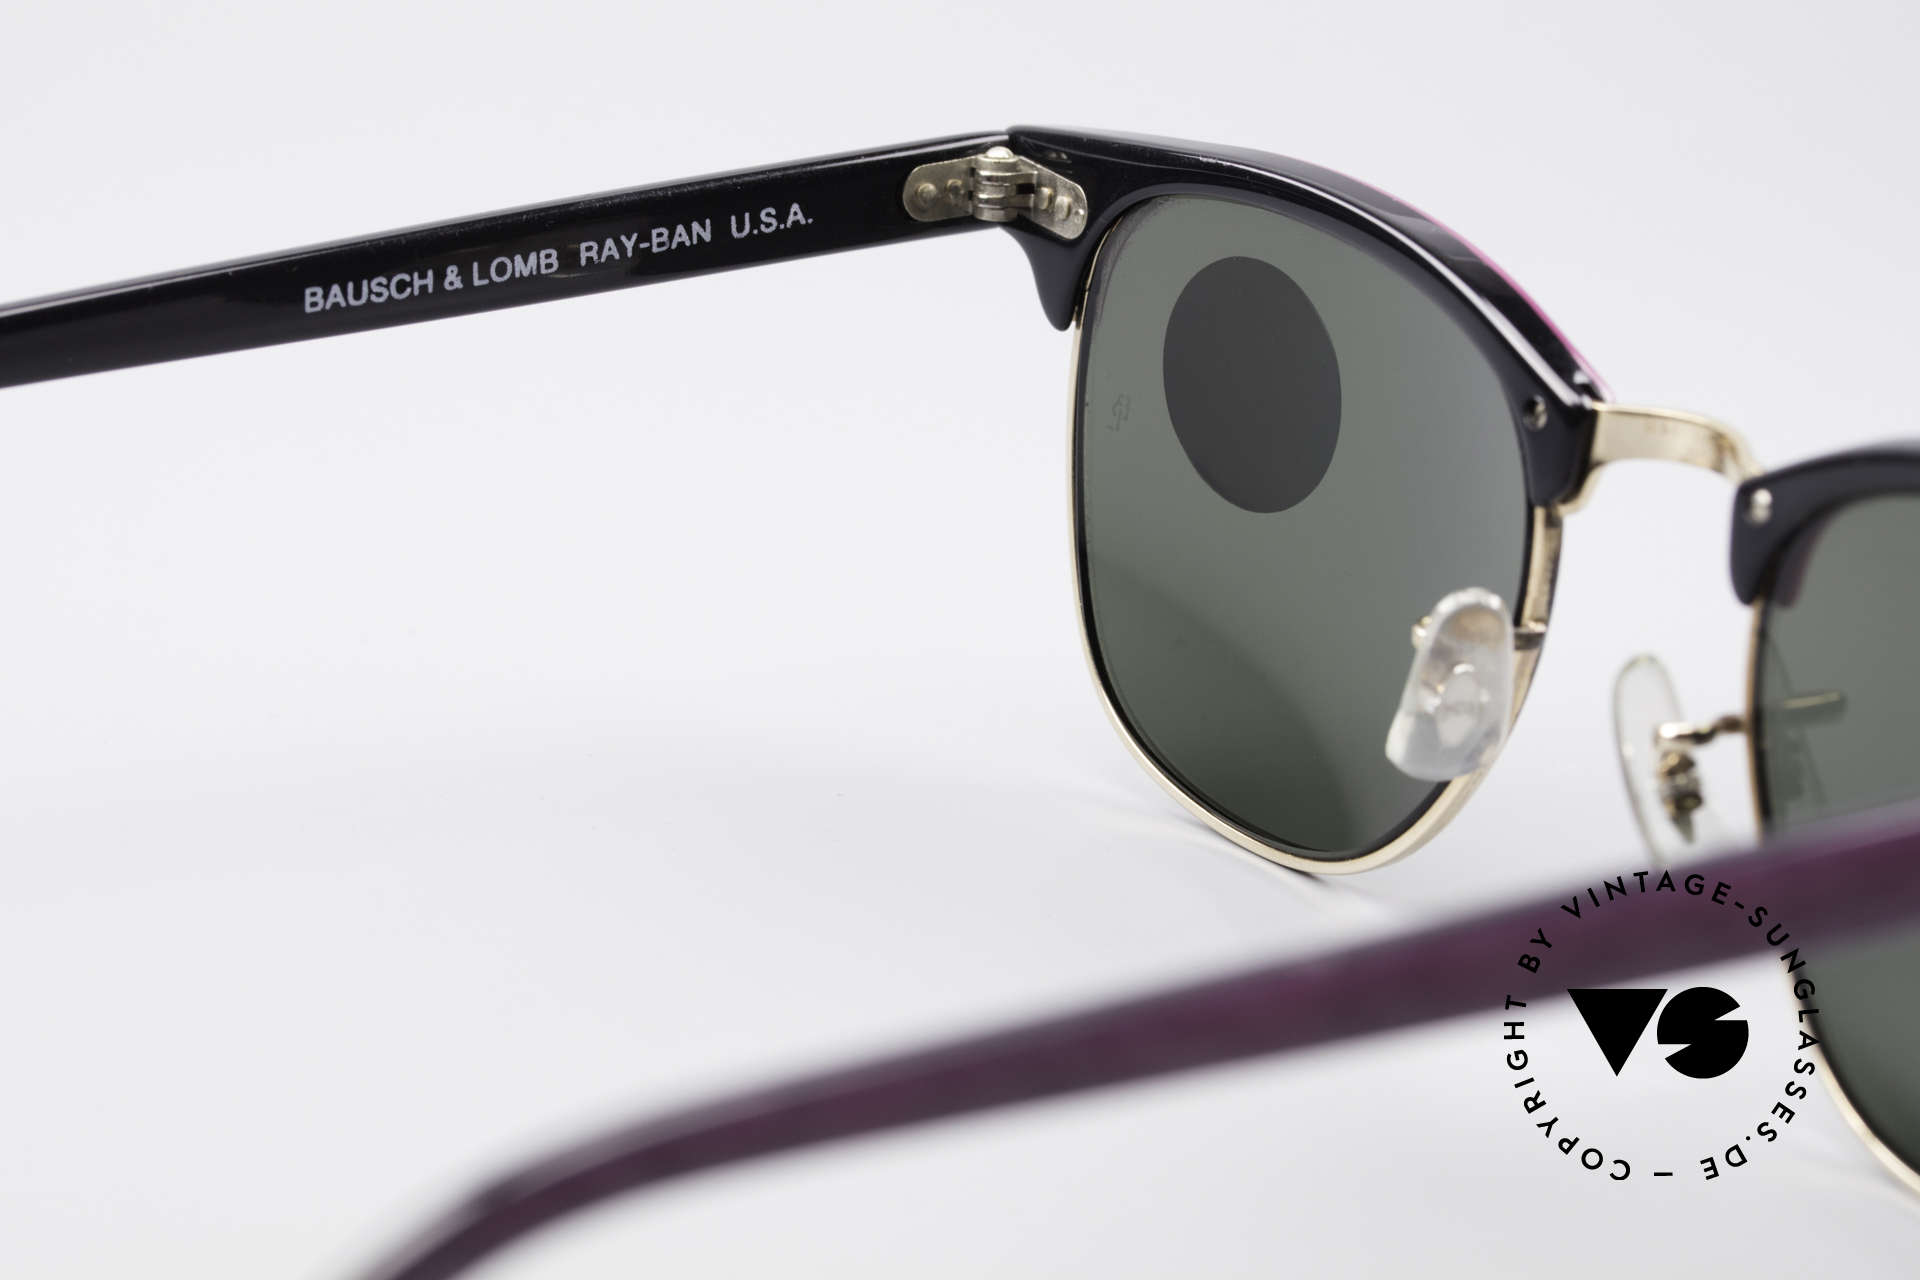 Ray Ban Clubmaster Bausch & Lomb USA Shades, never worn (like all our old Ray Ban sunglasses), Made for Women